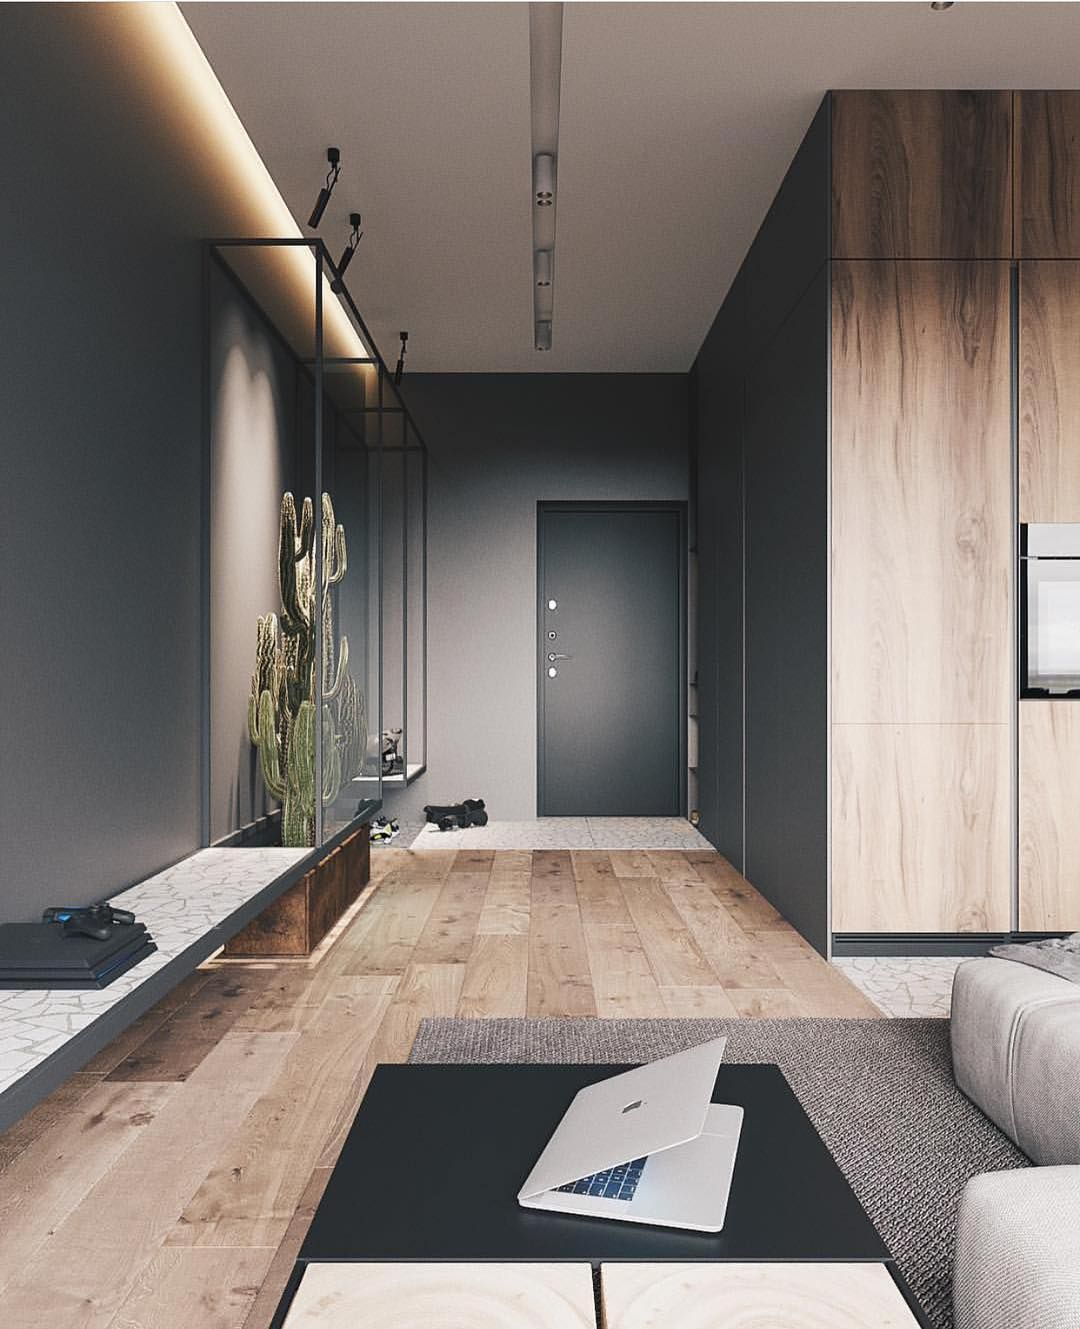 New The 10 Best Interior Designs In The World Interior Design Apartment Styles Ideas Bohemian Livin Apartment Design Stylish Apartment Apartment Interior